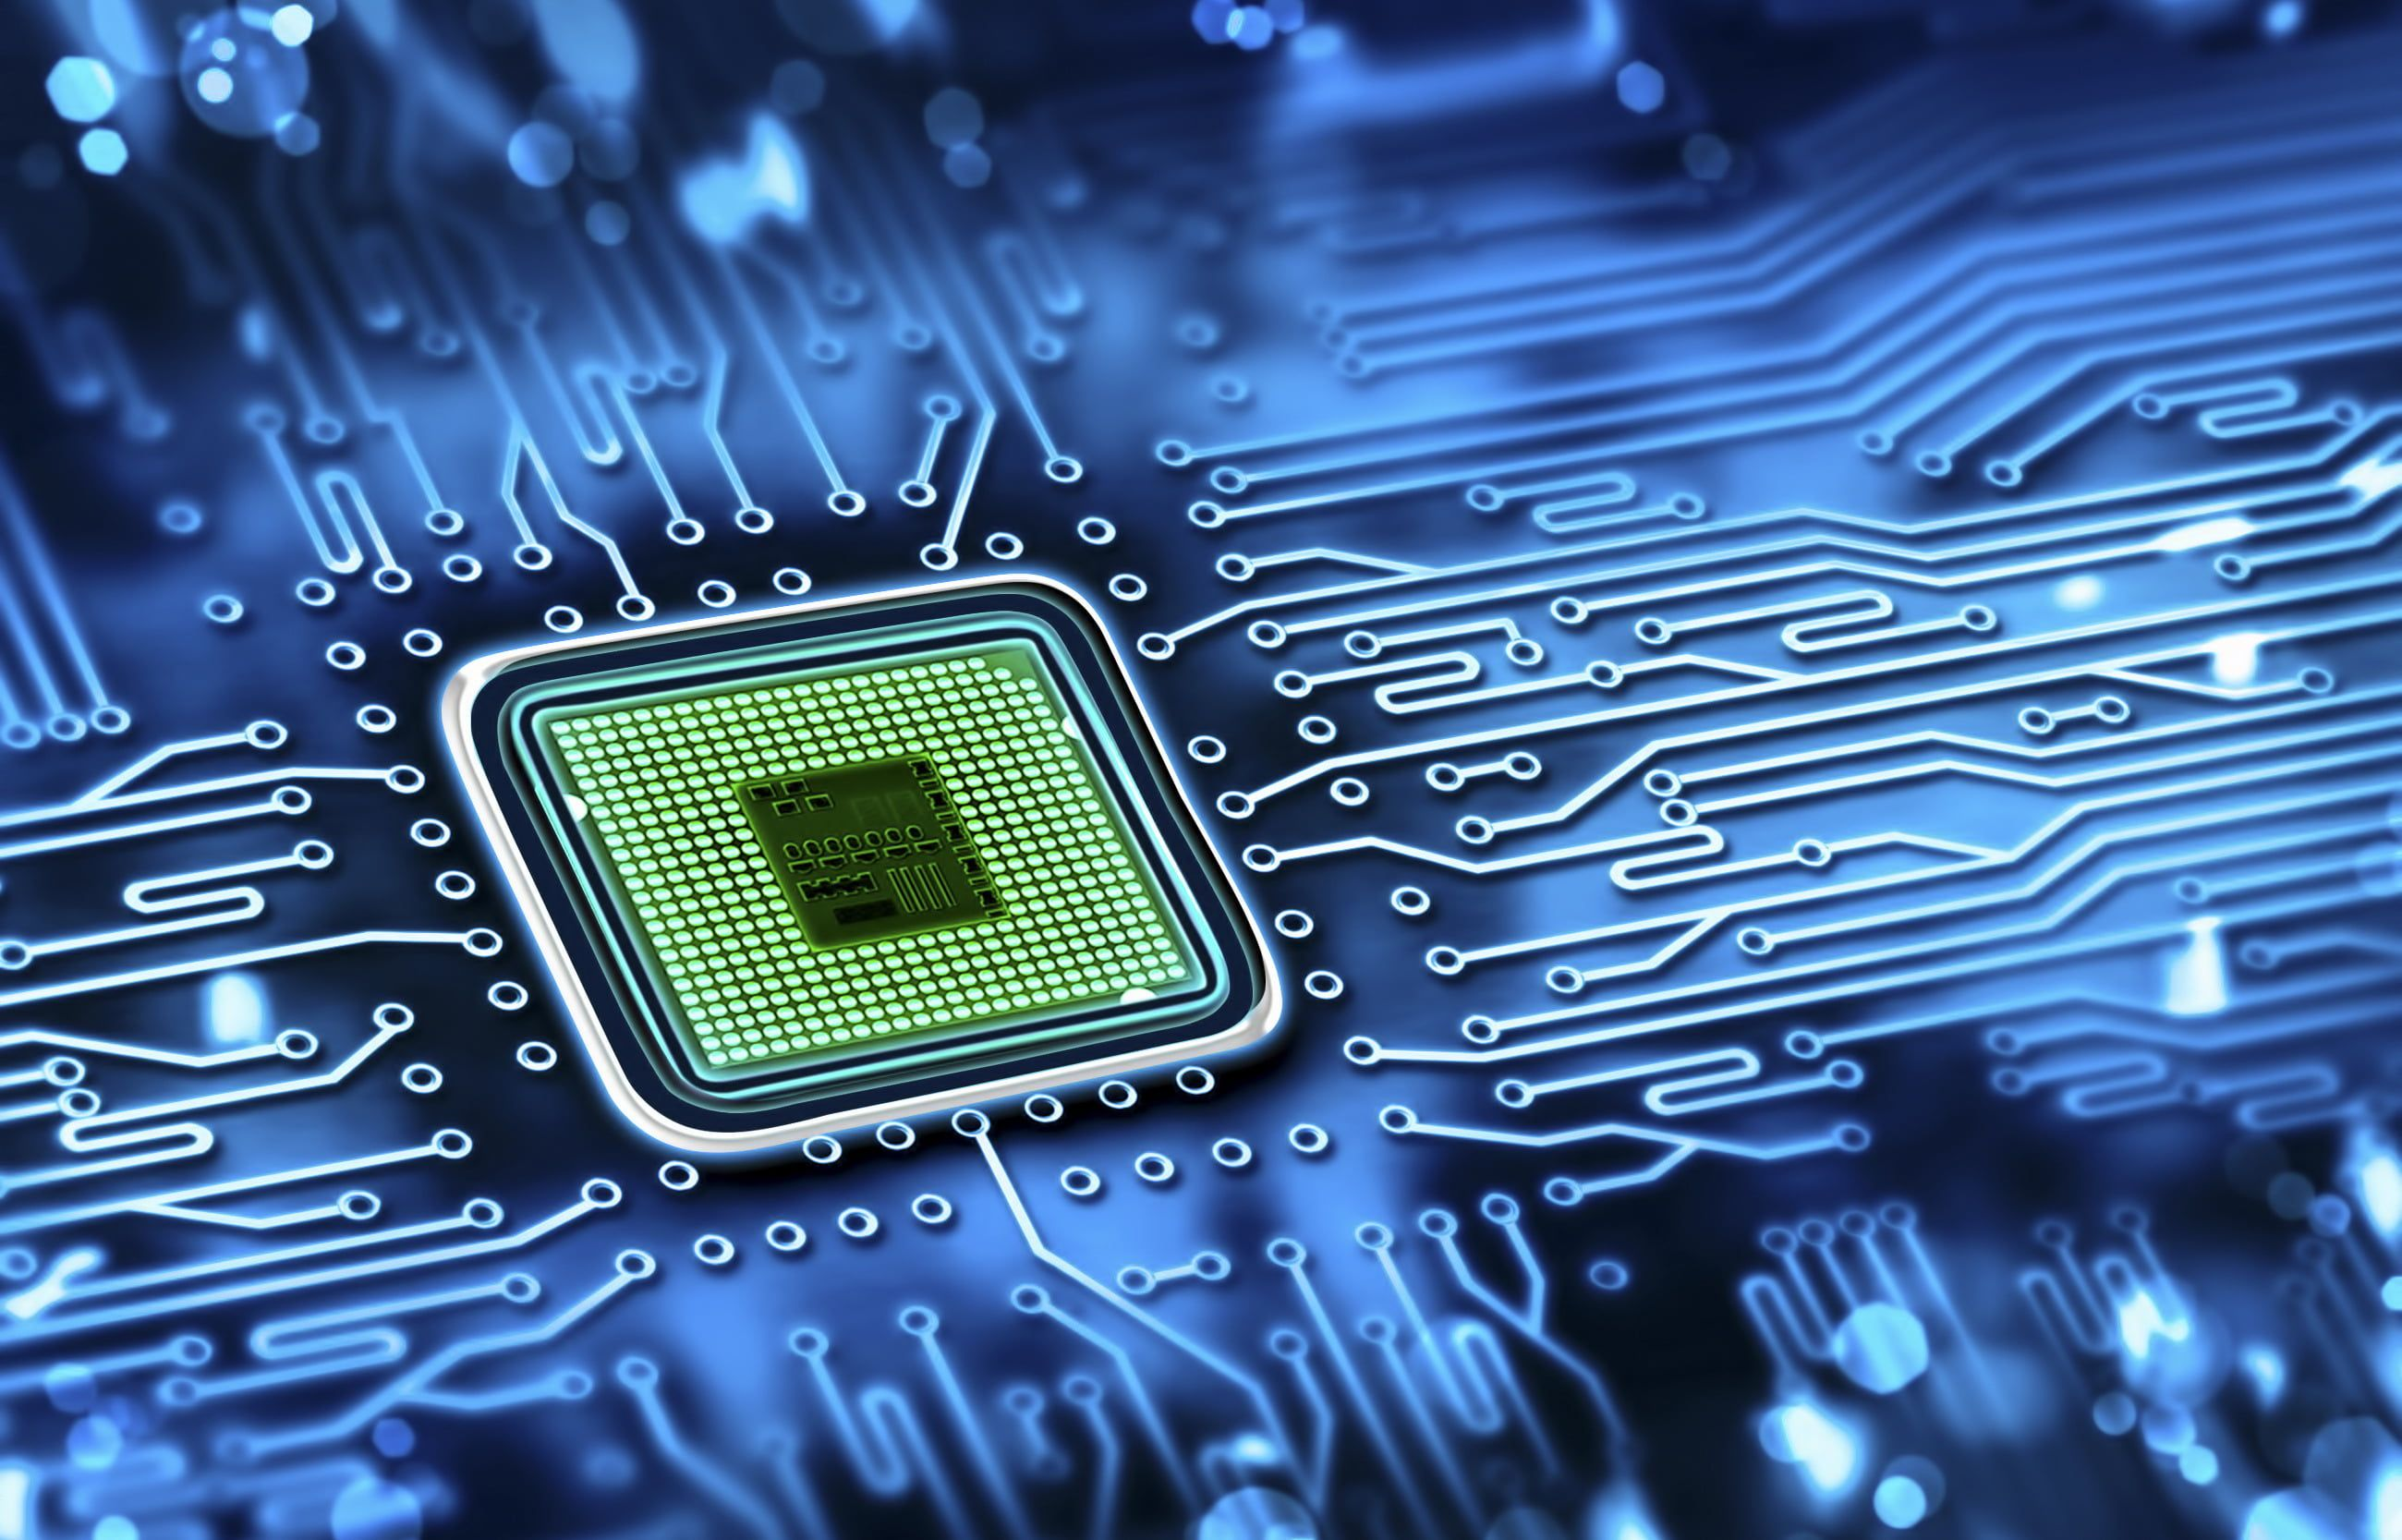 Green Computer Processor Blue Chip Color Fee Track Processor Hi Tech Wallpaper Technology In 2020 Printed Circuit Boards Futuristic Technology Computer Chip